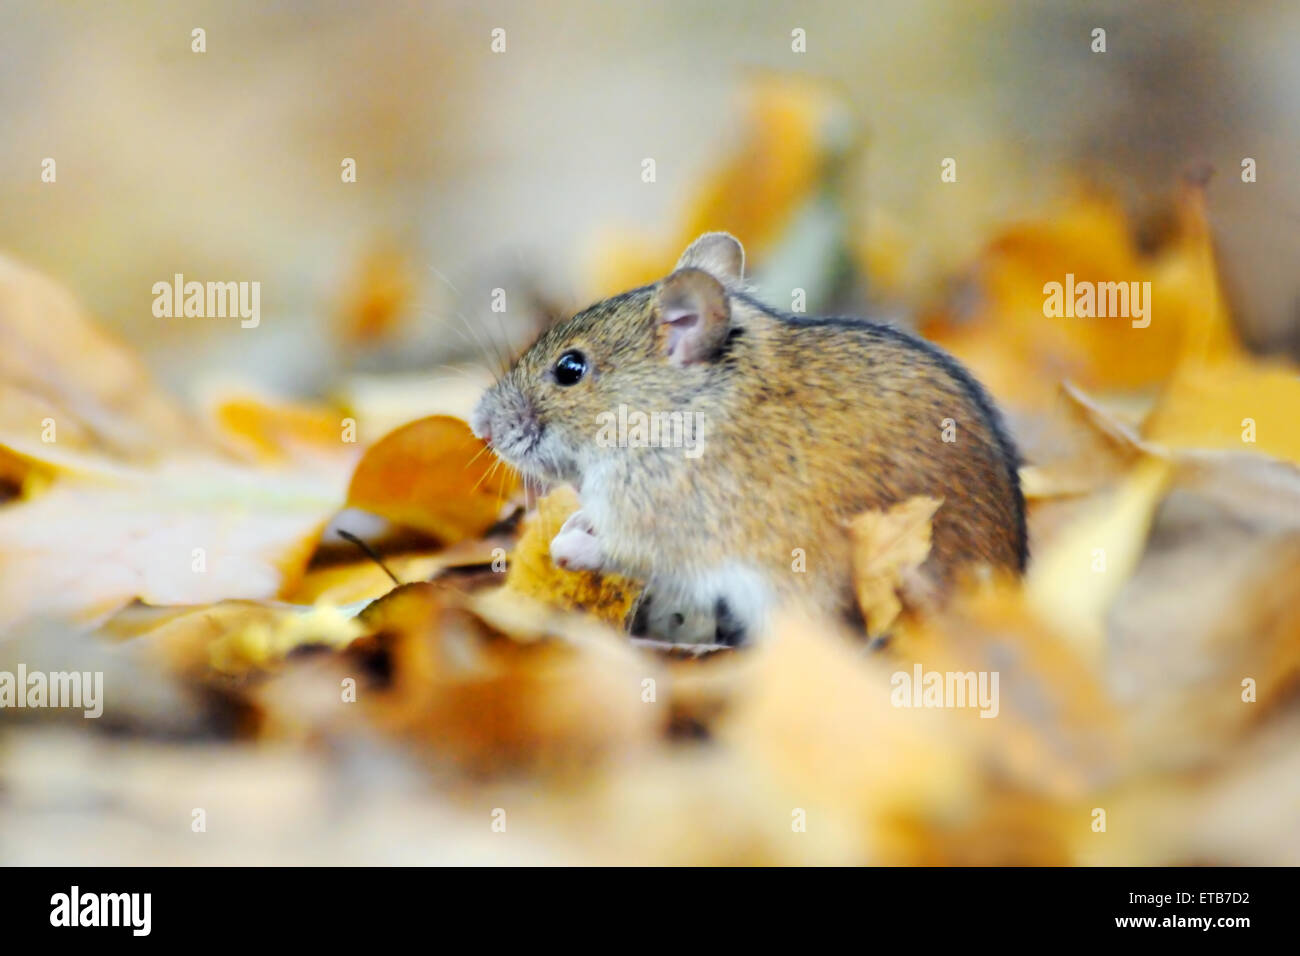 Striped Field Mouse (Apodemus agrarius) among bright yellow dry leaves - Stock Image